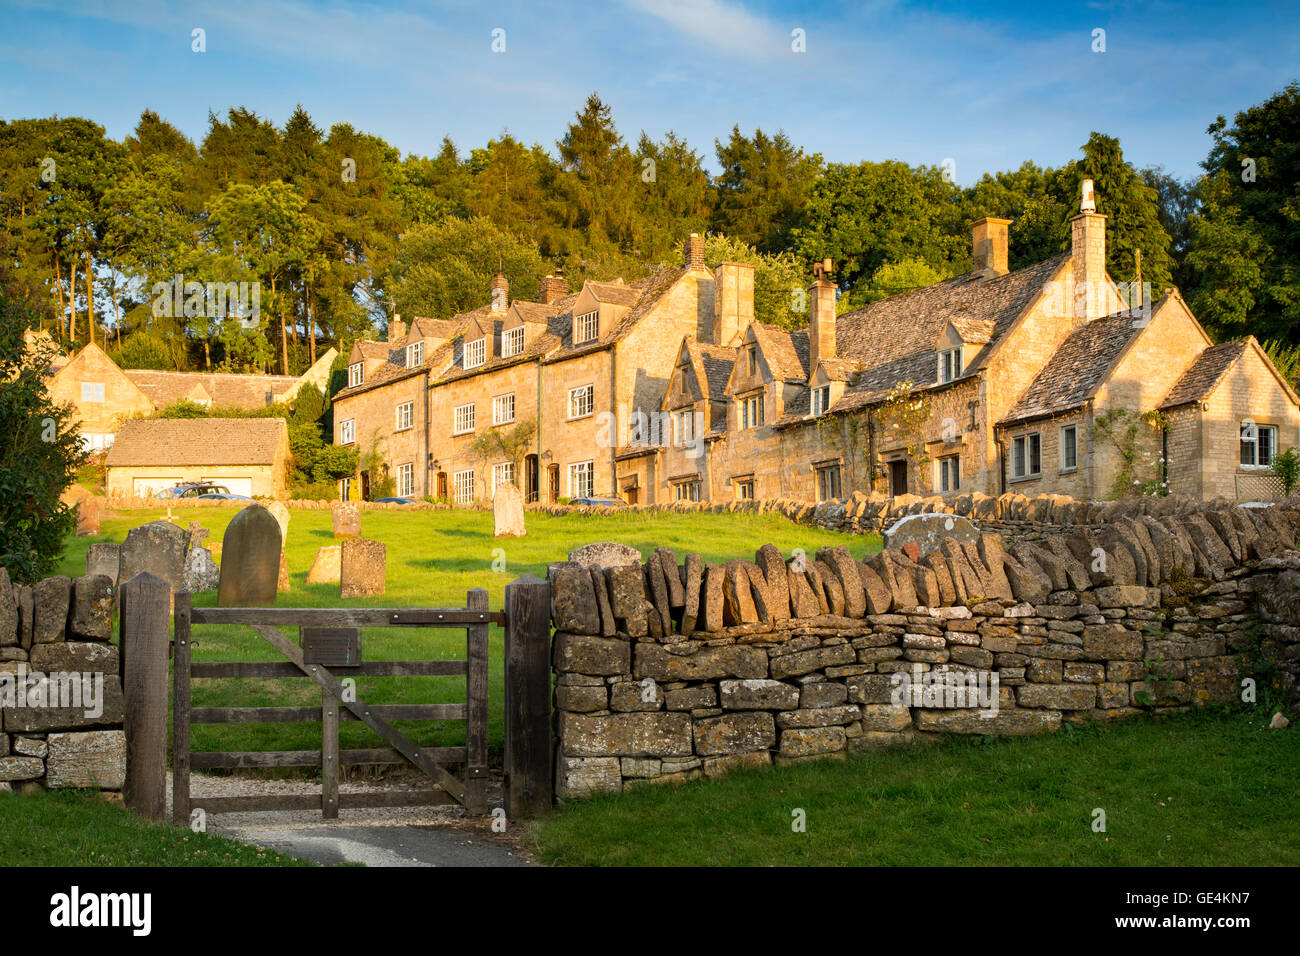 Setting sunlight on the town of Snowshill in the Cotswolds, Gloucestershire, England - Stock Image